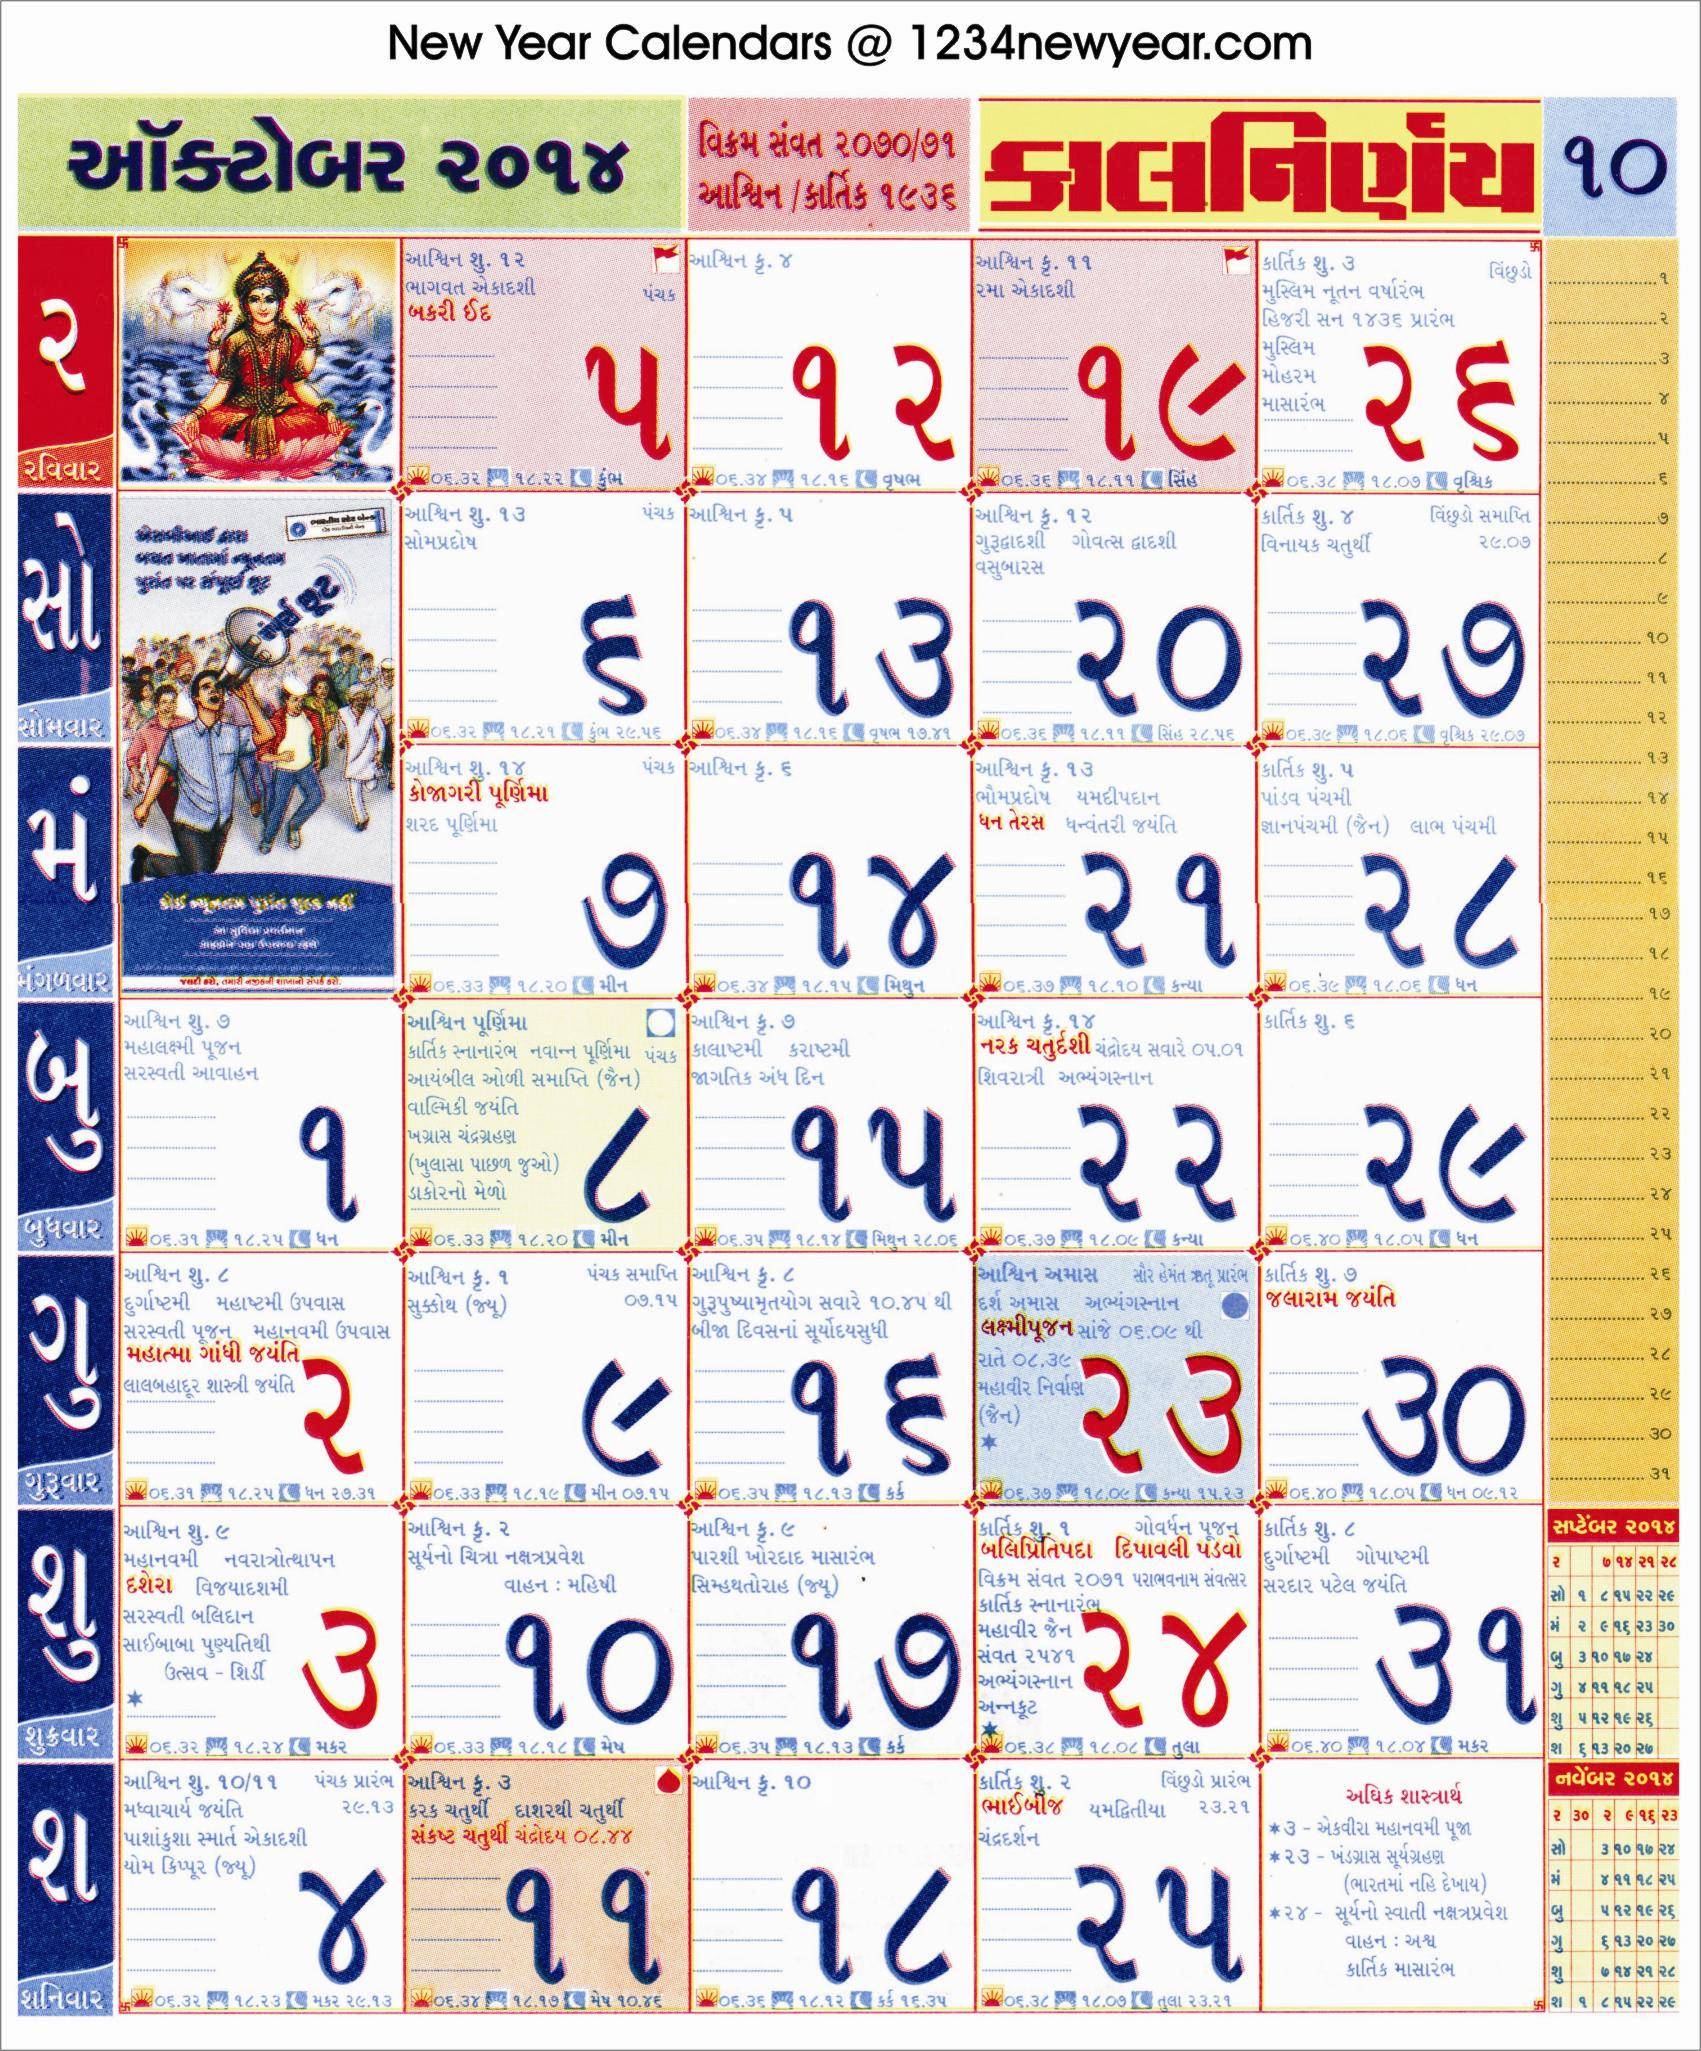 October 28th, 2014 by GujaratiLexicon Team | No Comments »